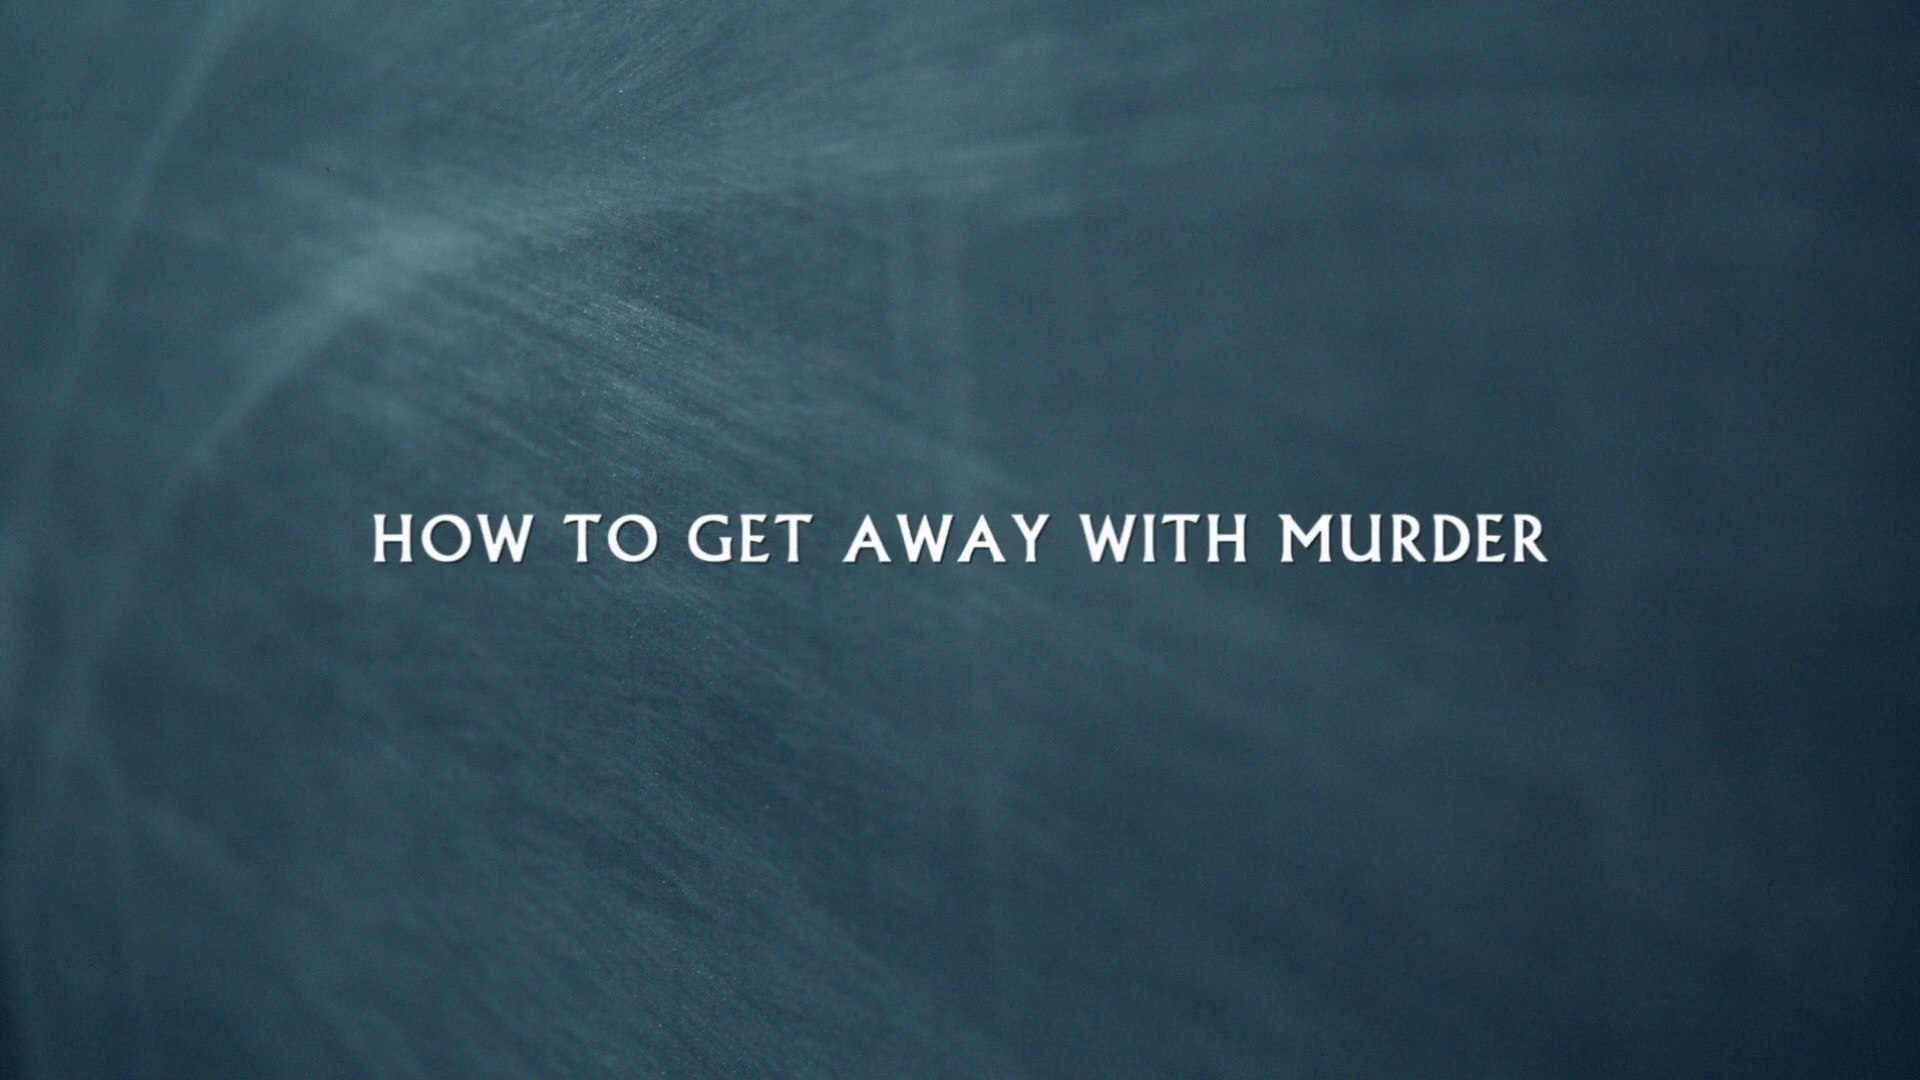 How to Get Away with Murder | How to Get Away with Murder ...